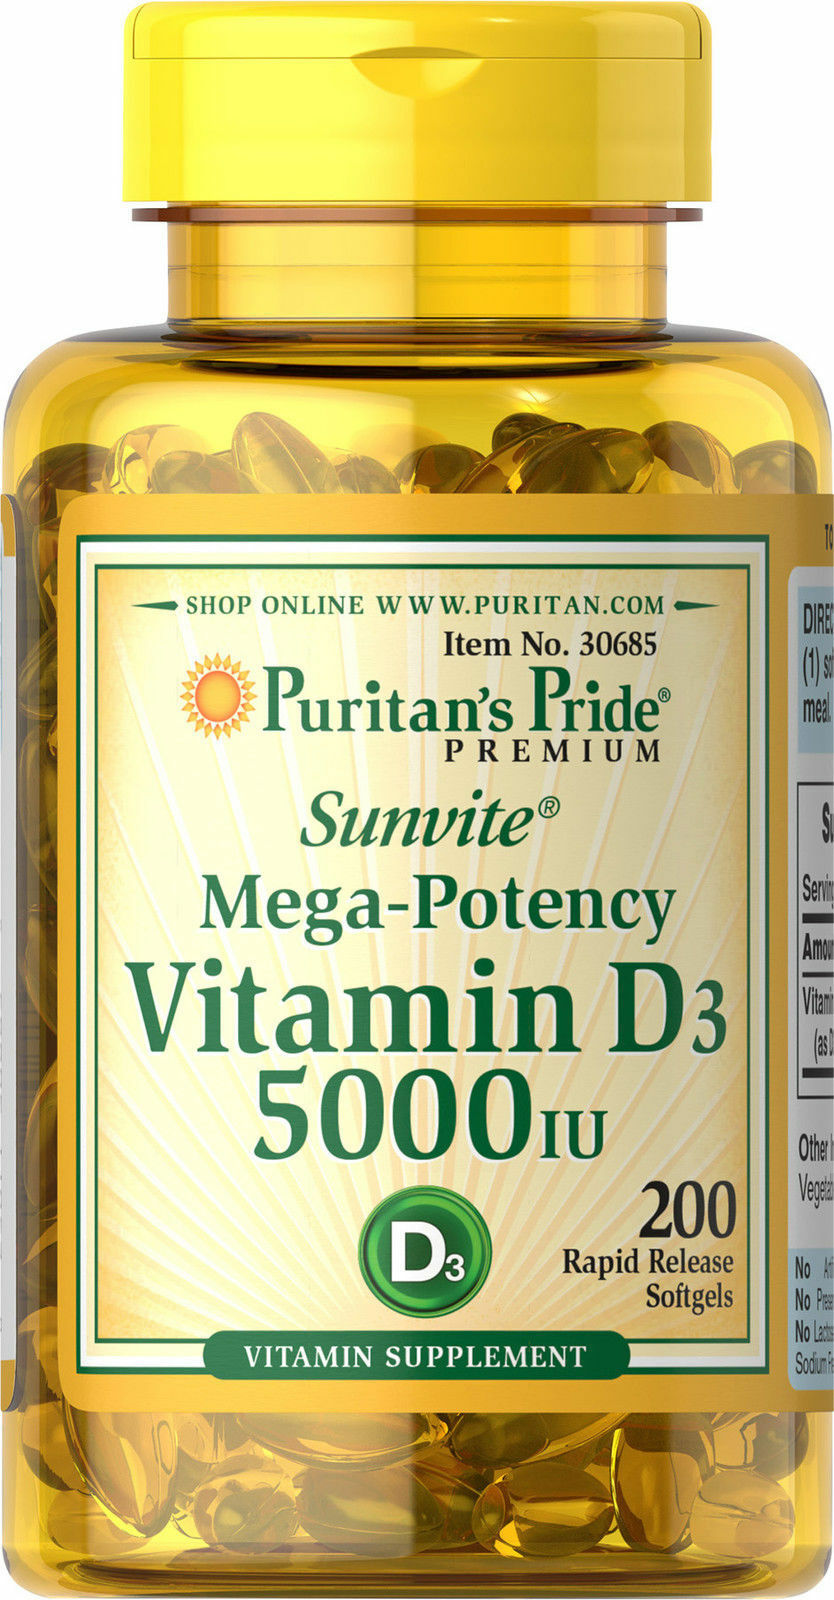 Puritan's Pride Mega-Potency Vitamin D3 5000 IU (200 Softgels)